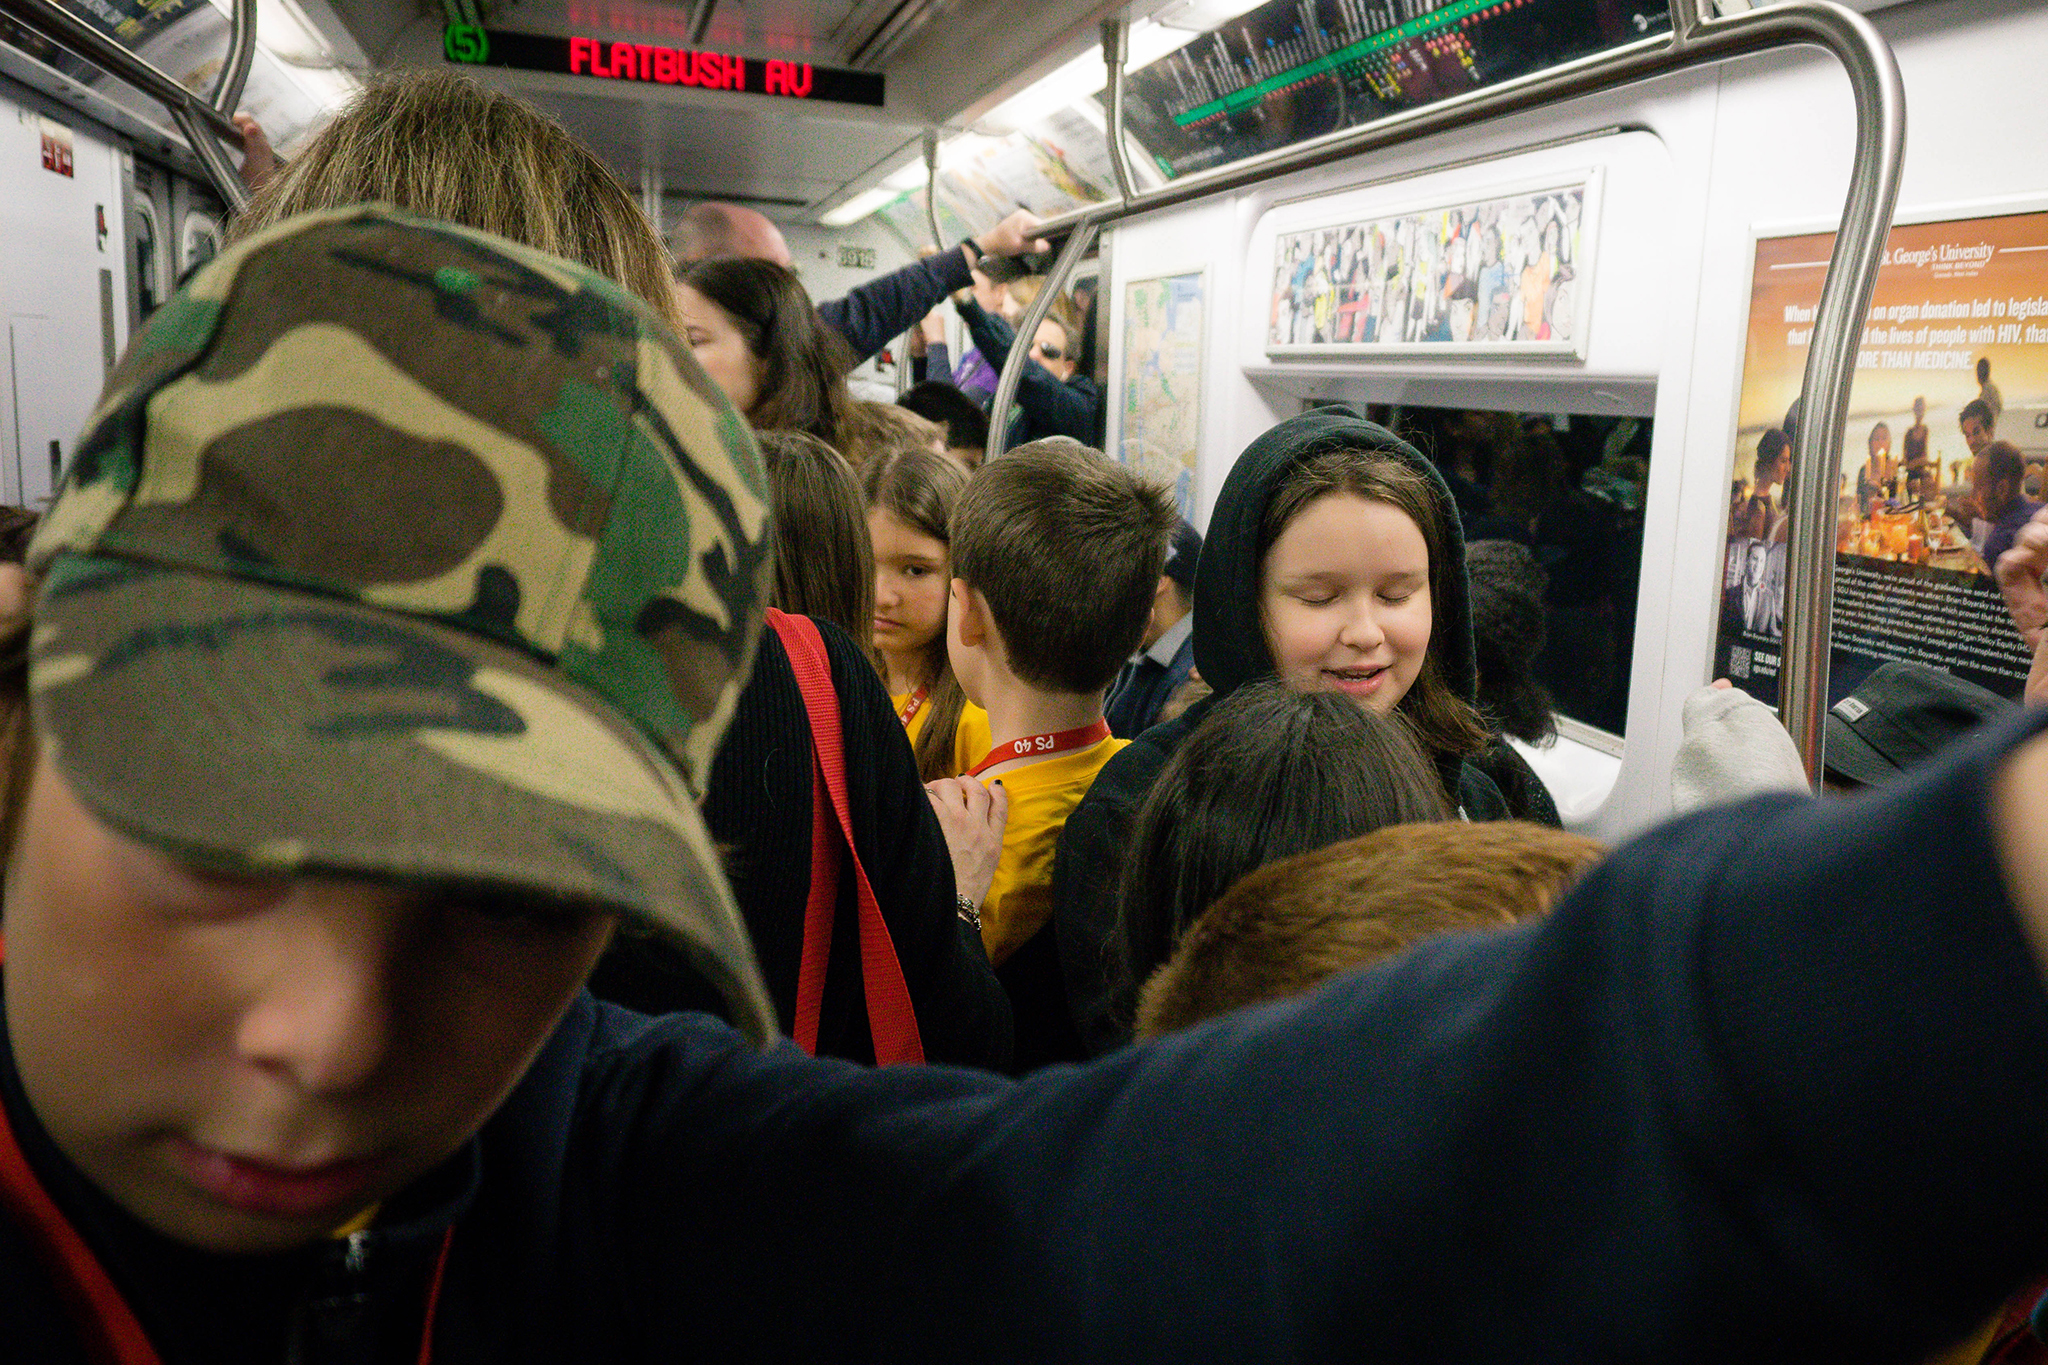 Field trips on the subway are a hellish experience